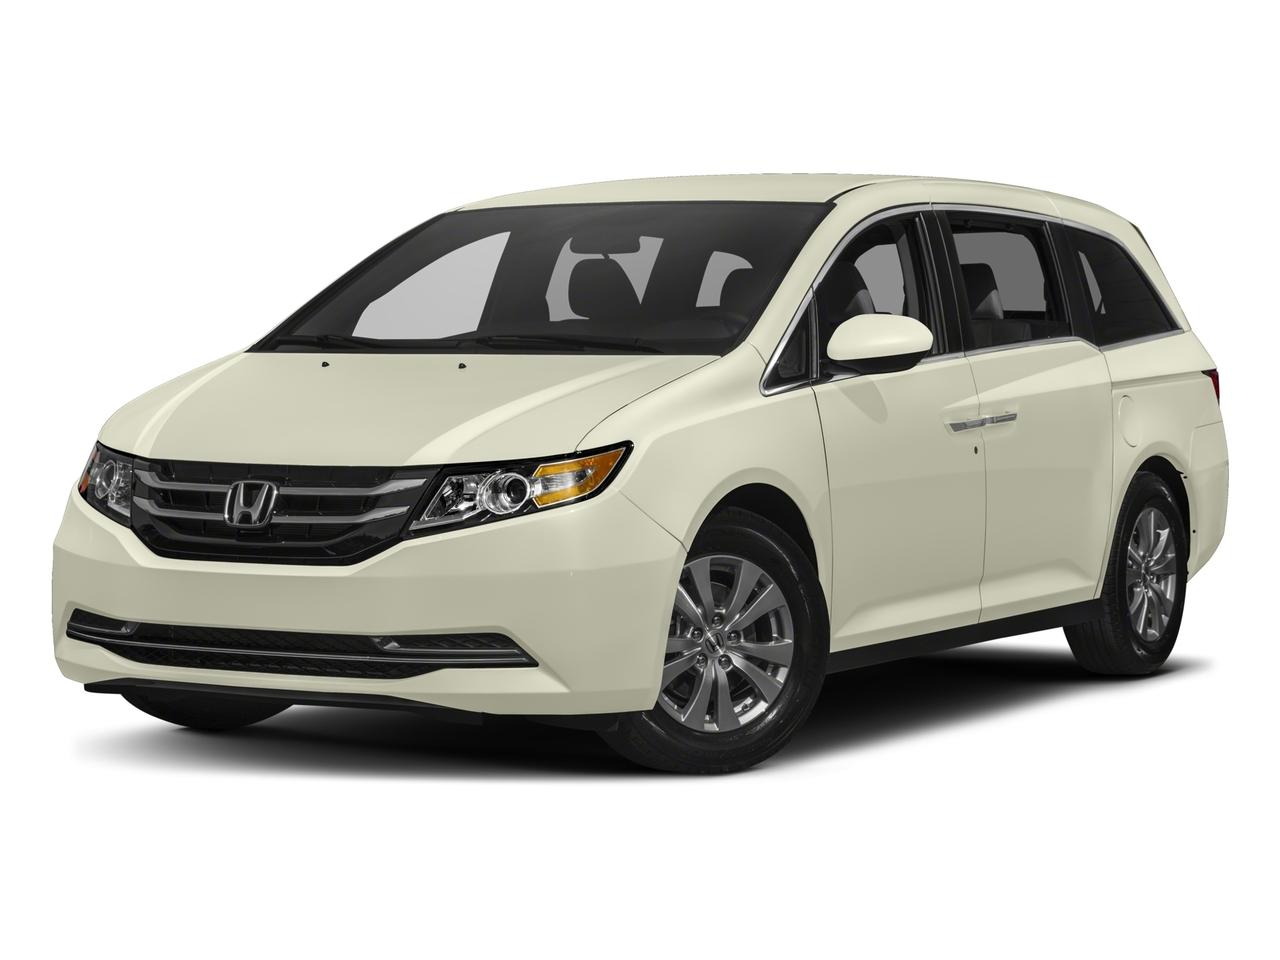 2017 Honda Odyssey Vehicle Photo in Annapolis, MD 21401